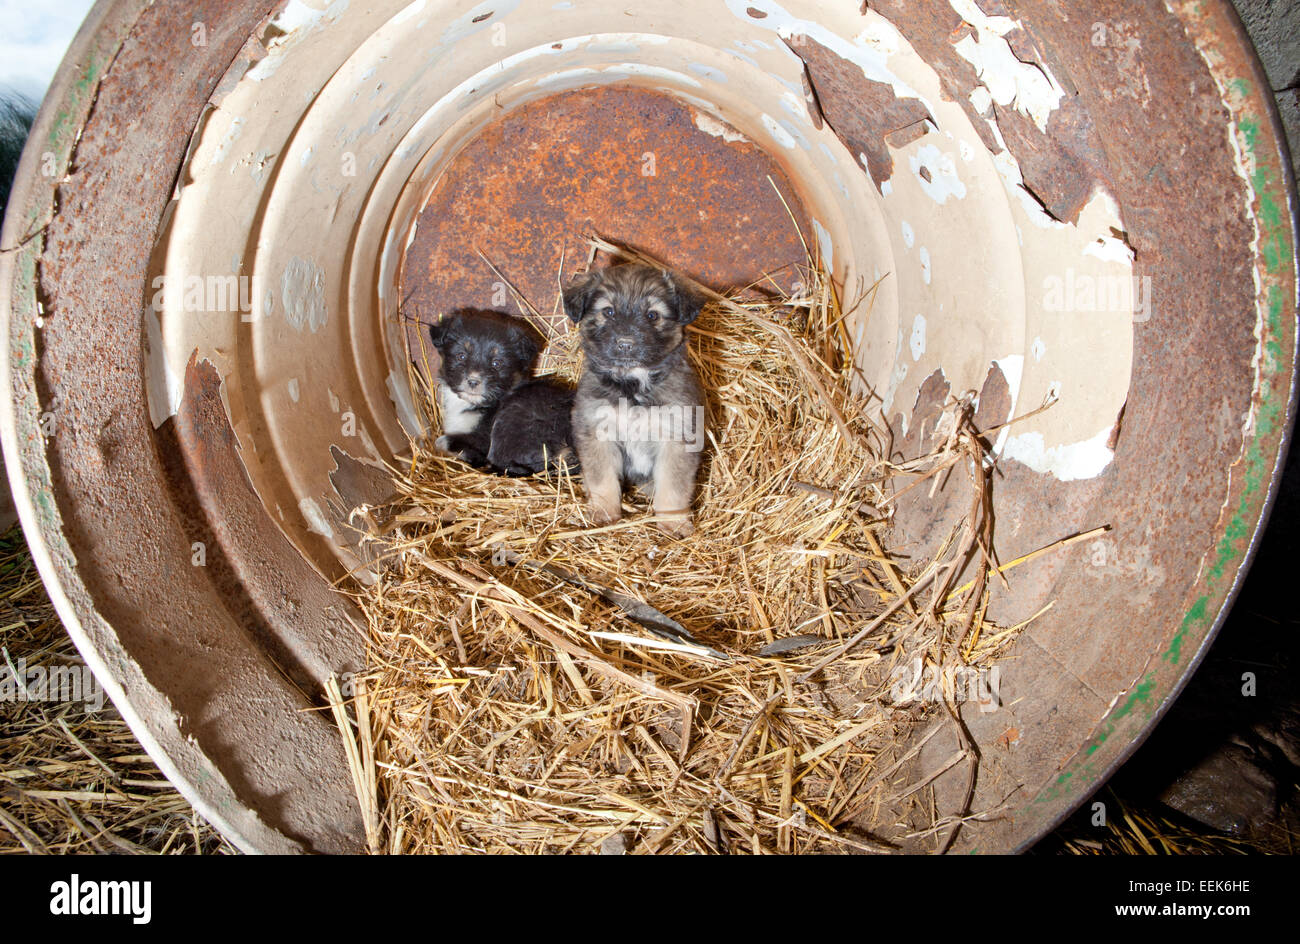 Cute puppies dogs at country state sleeping inside a large rusty can - Stock Image